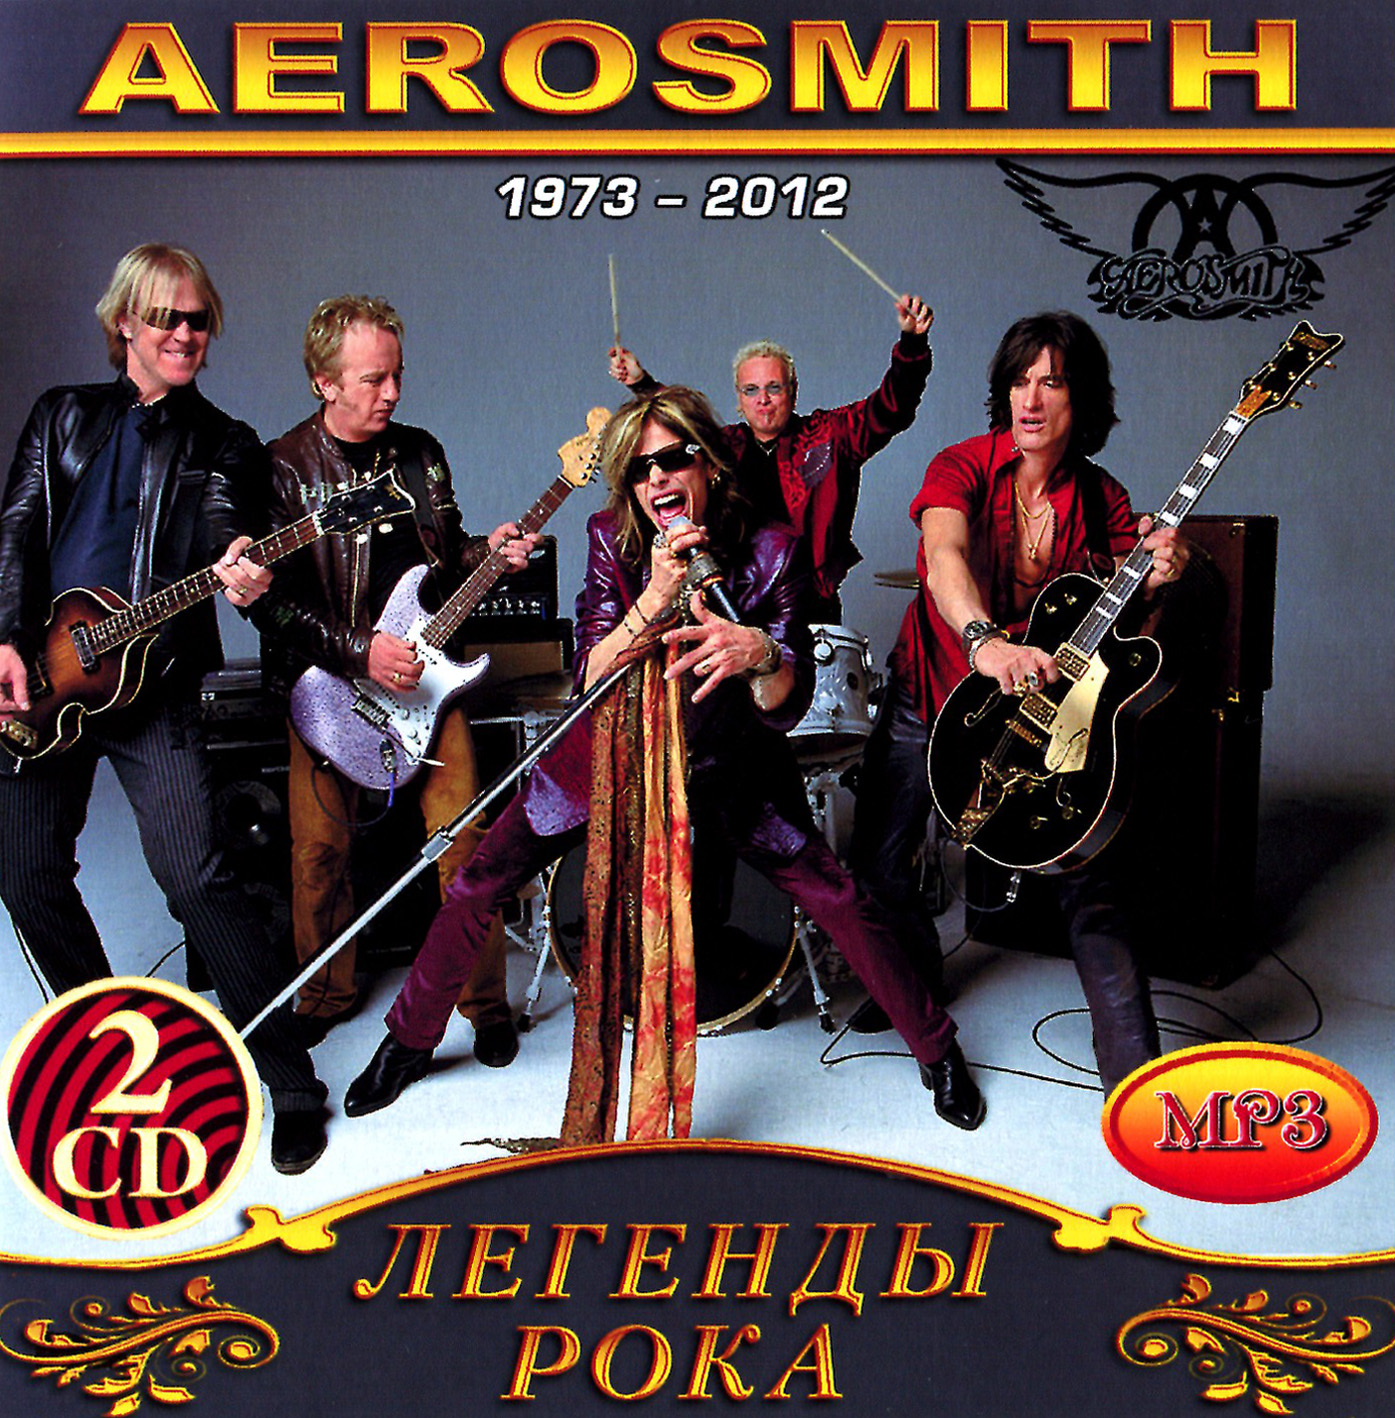 Aerosmith 2cd [mp3]